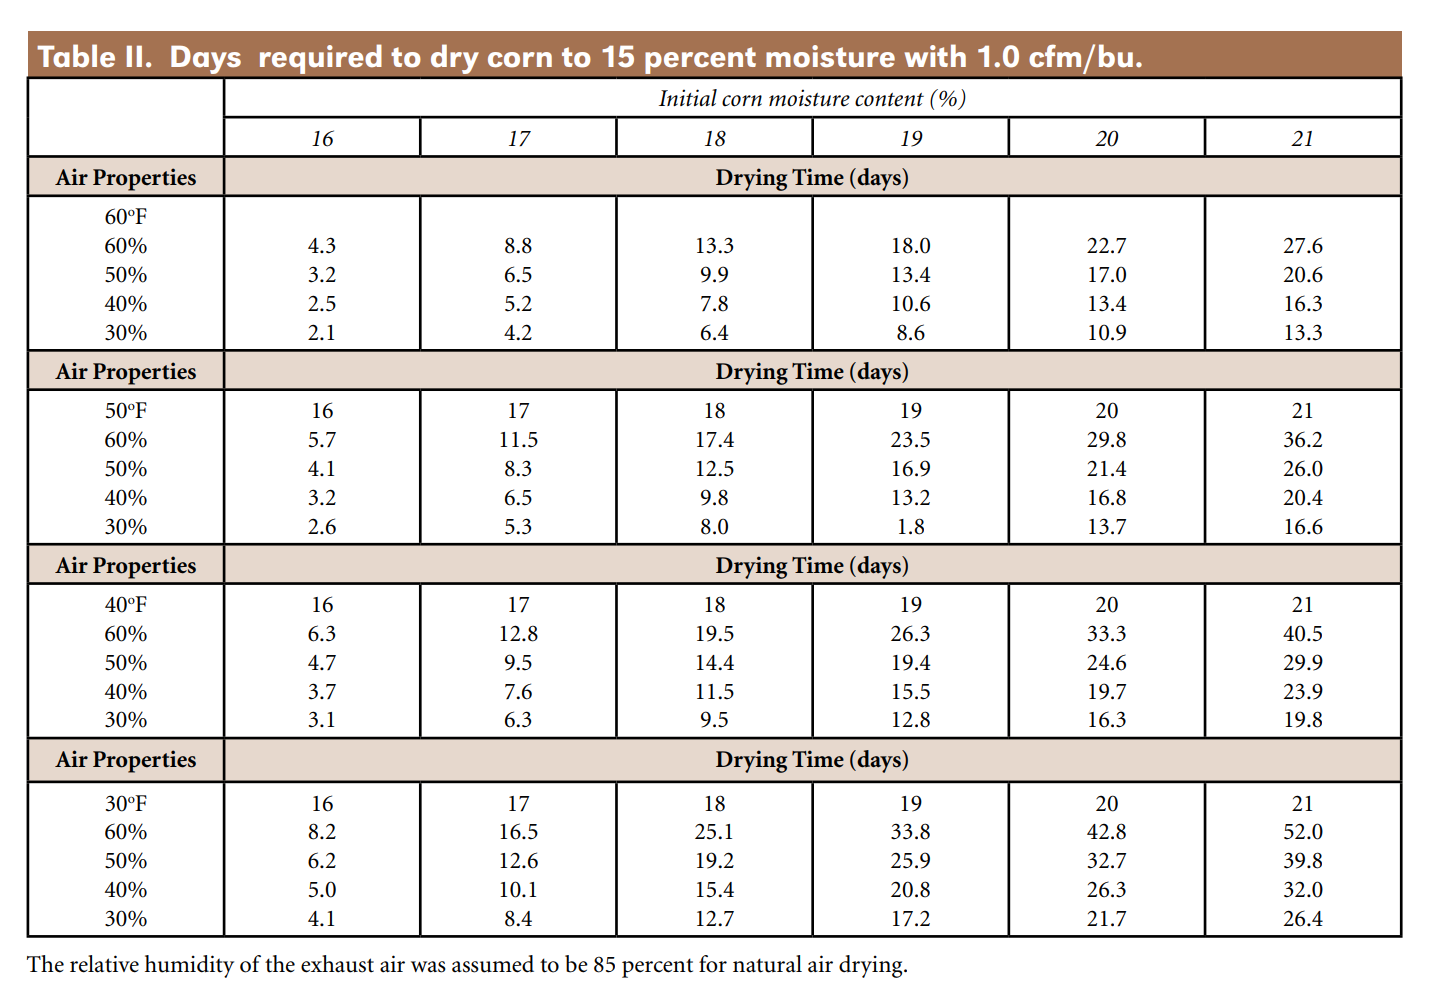 Days required to dry corn to 15 percent moisture with 1.0 cfm per bu. UNL EC